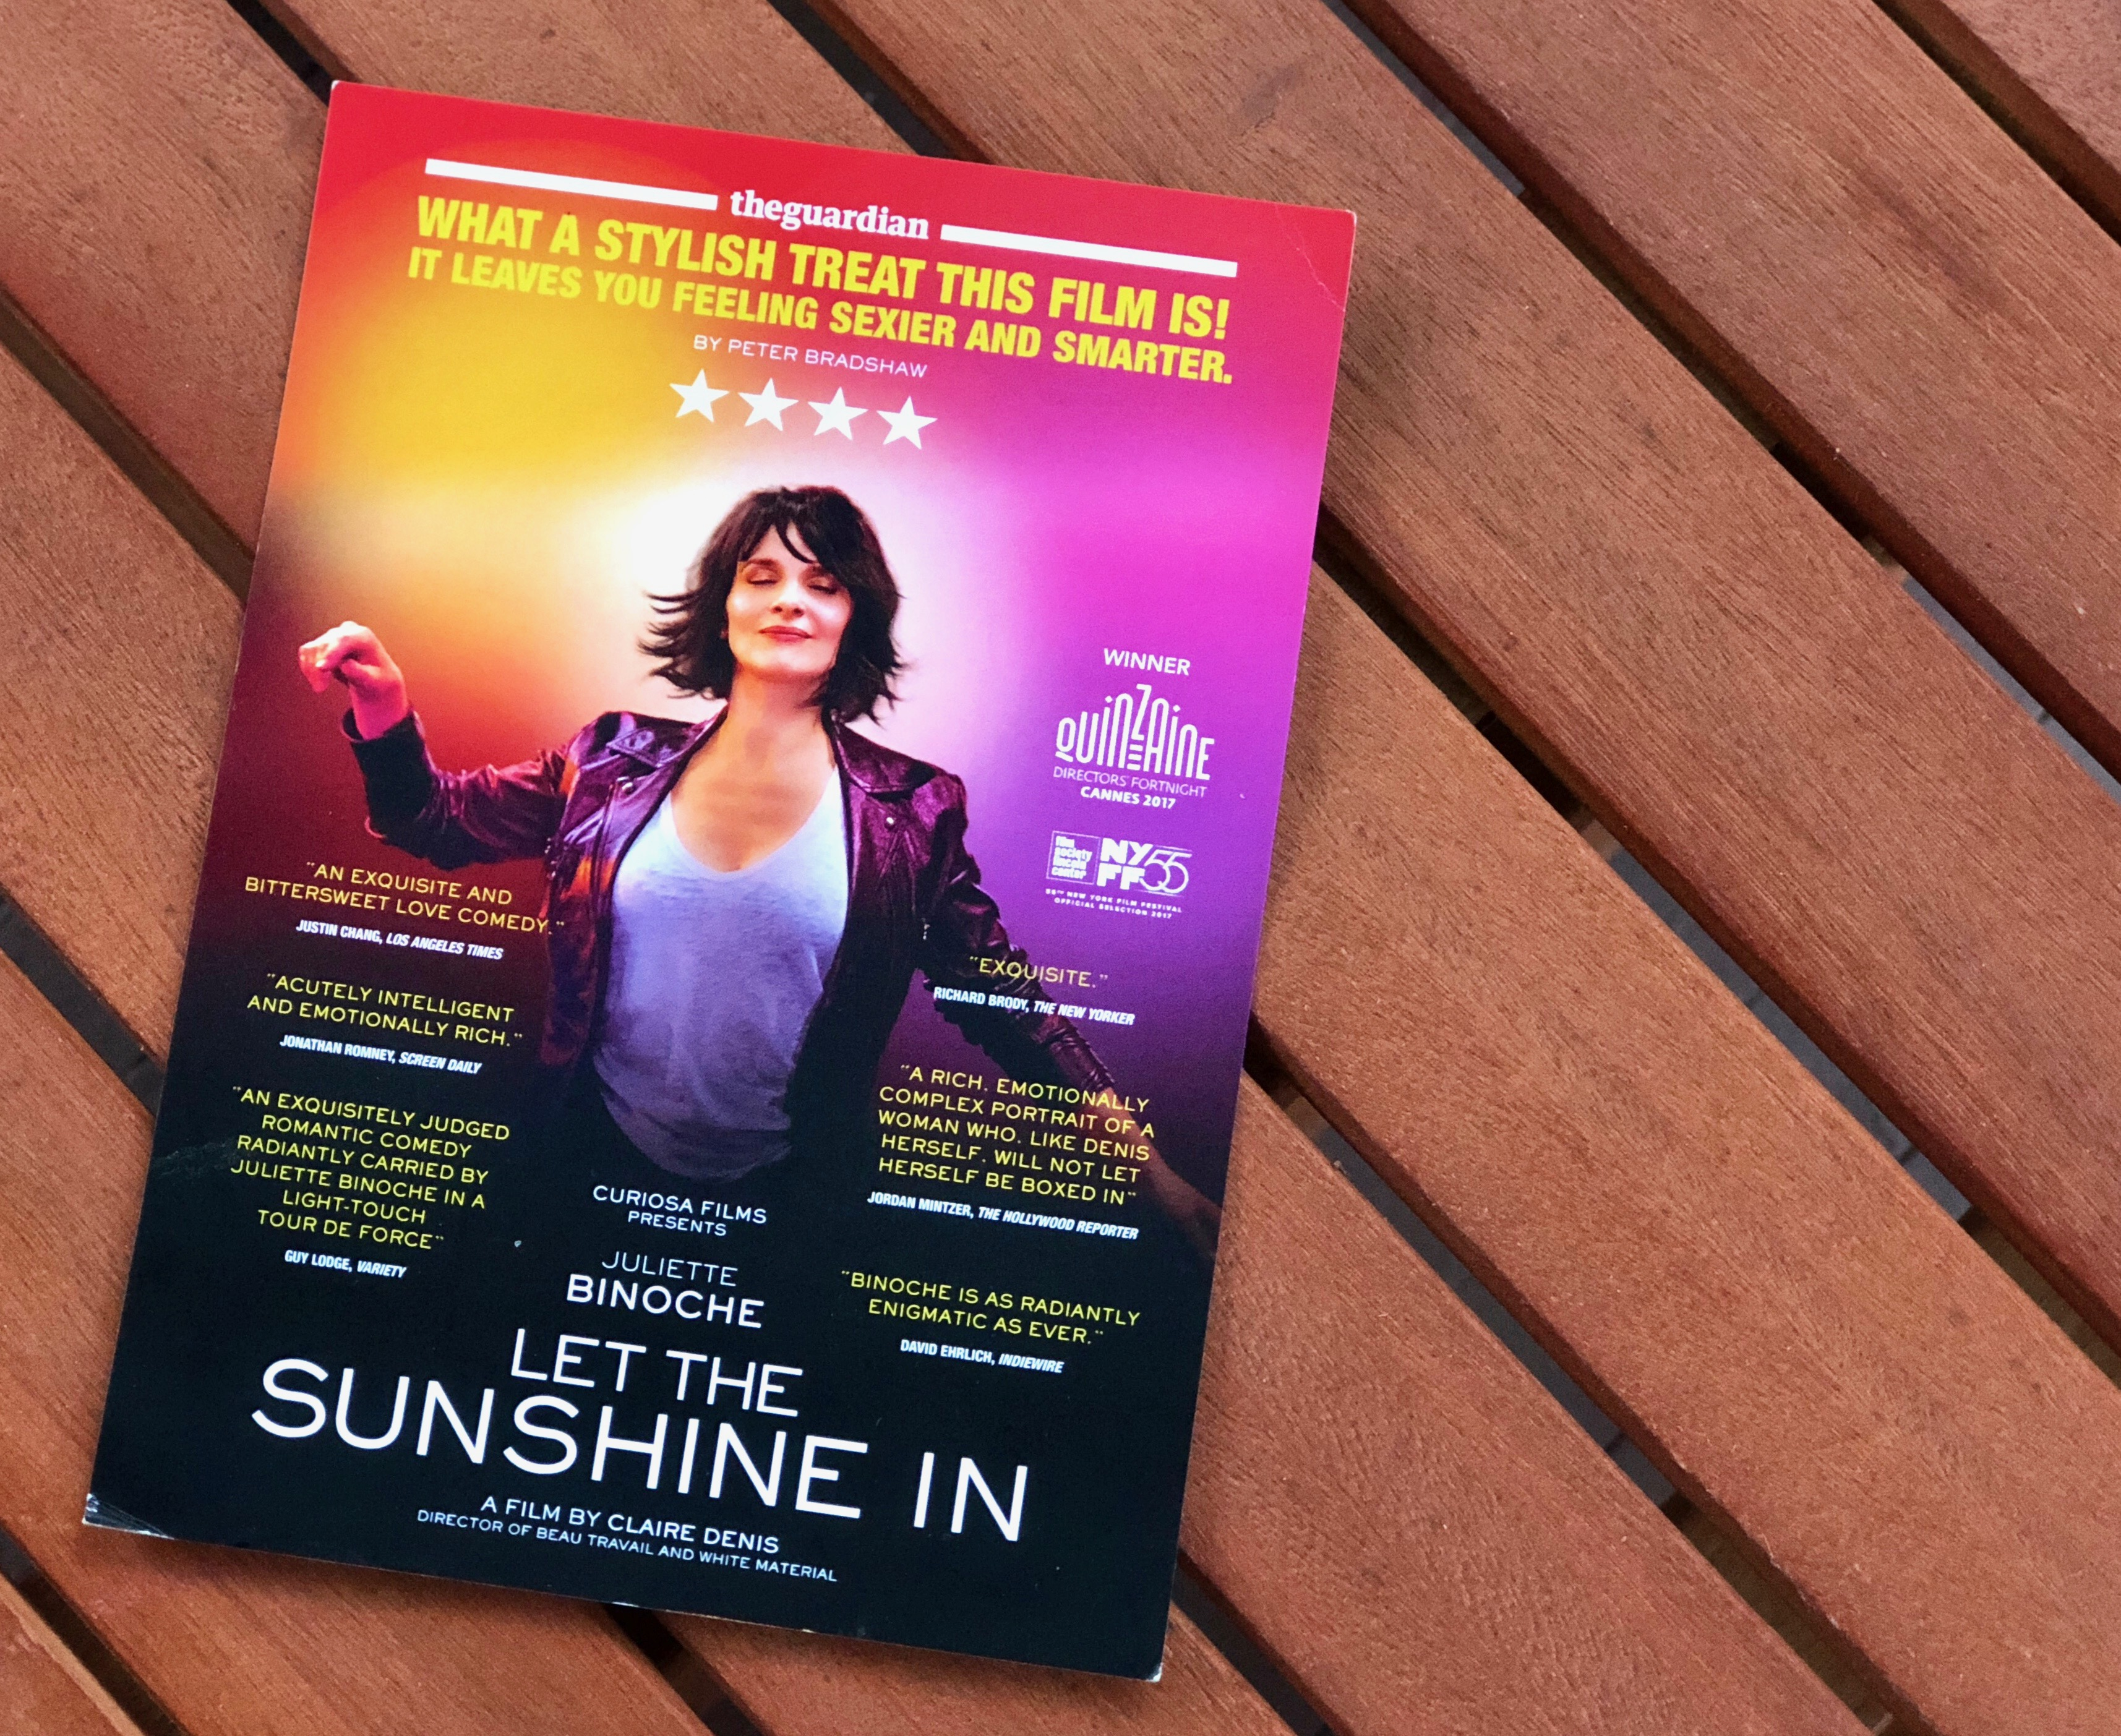 Let the Sunshine and Juliette Binoche in